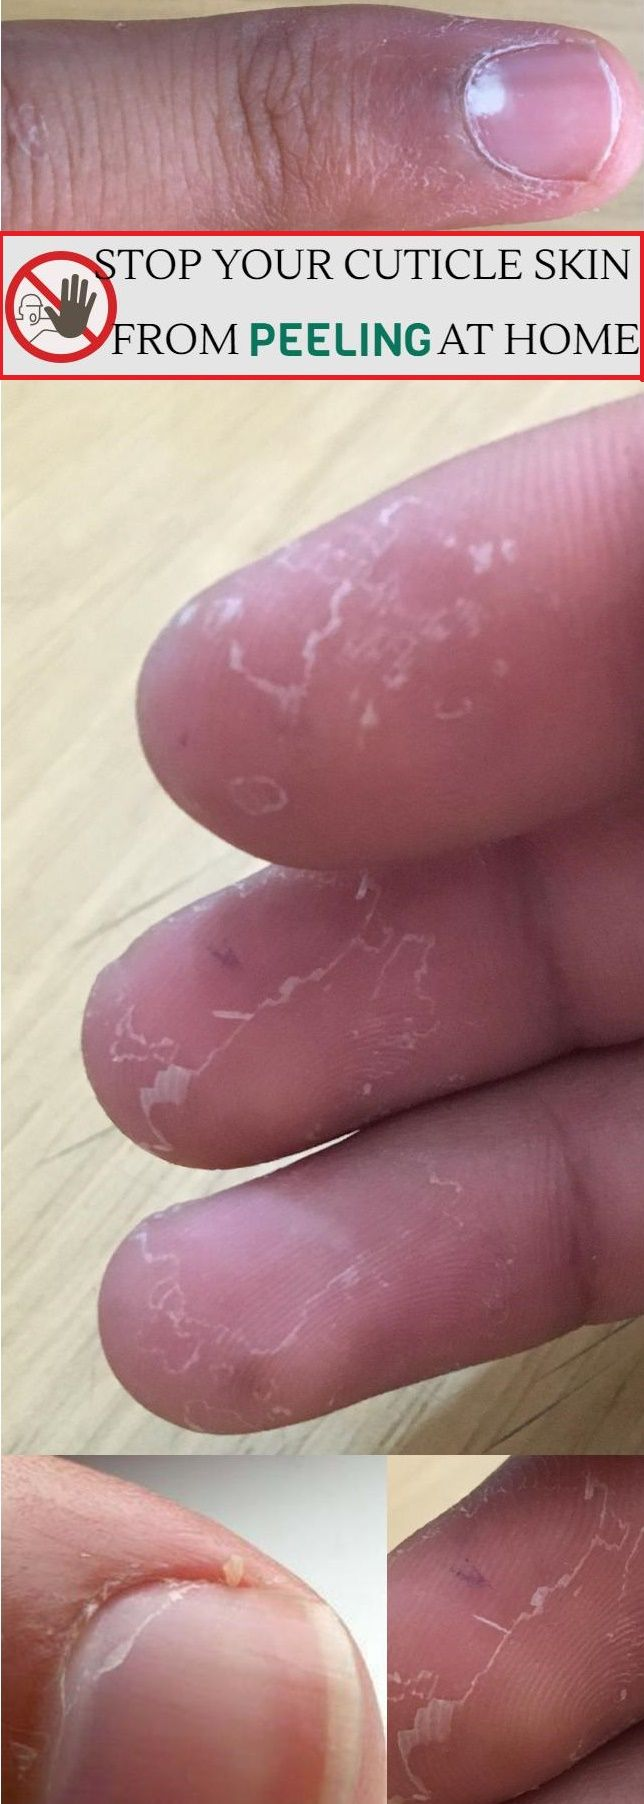 How to Stop Your Cuticle Skin from Peeling